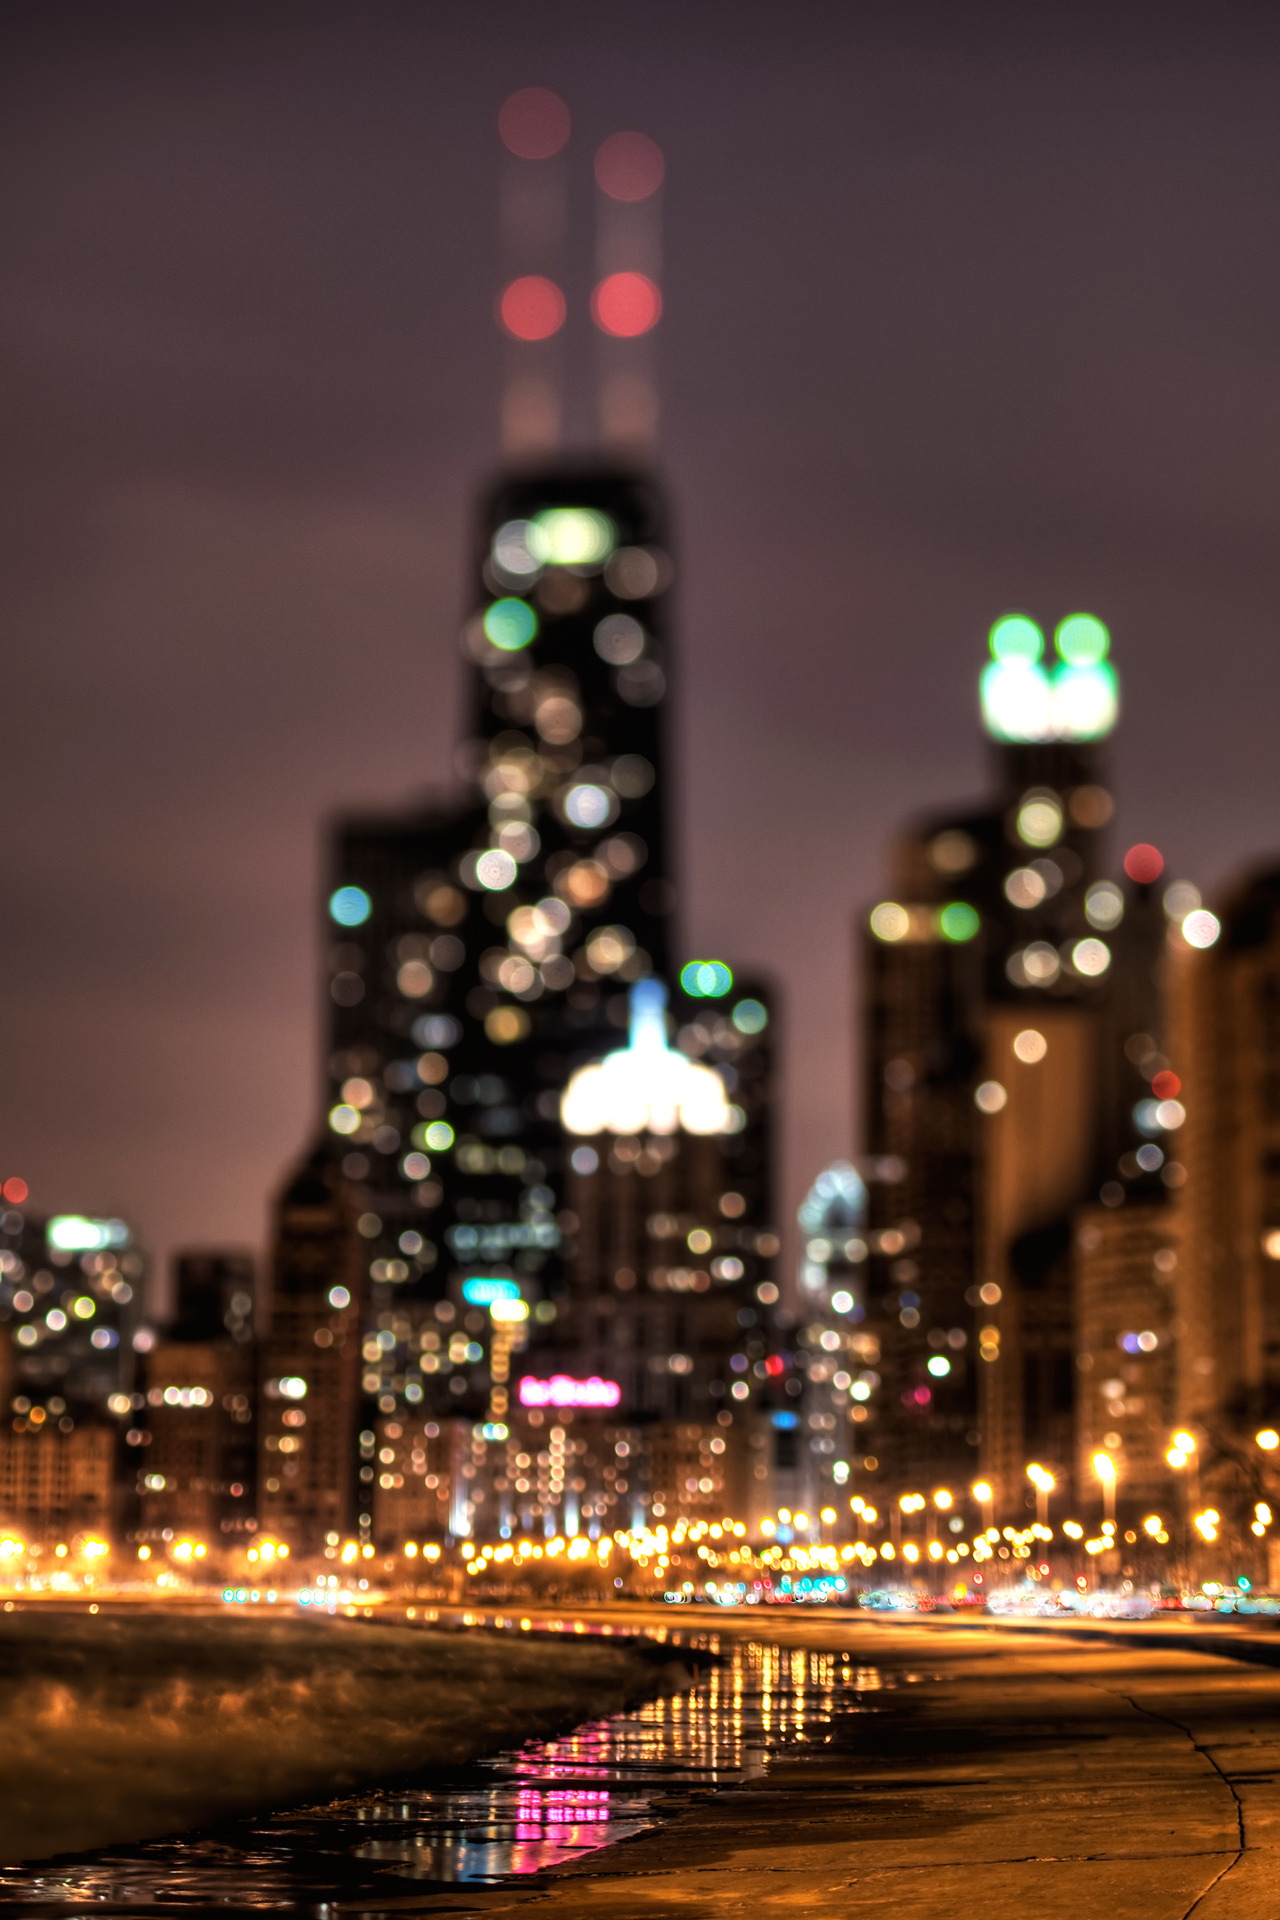 Chicago-IL-Christine-Groves-Realtor-Coldwell-Banker-in-Chicagoland-www-Groves-Realty-com-wallpaper-wp424506